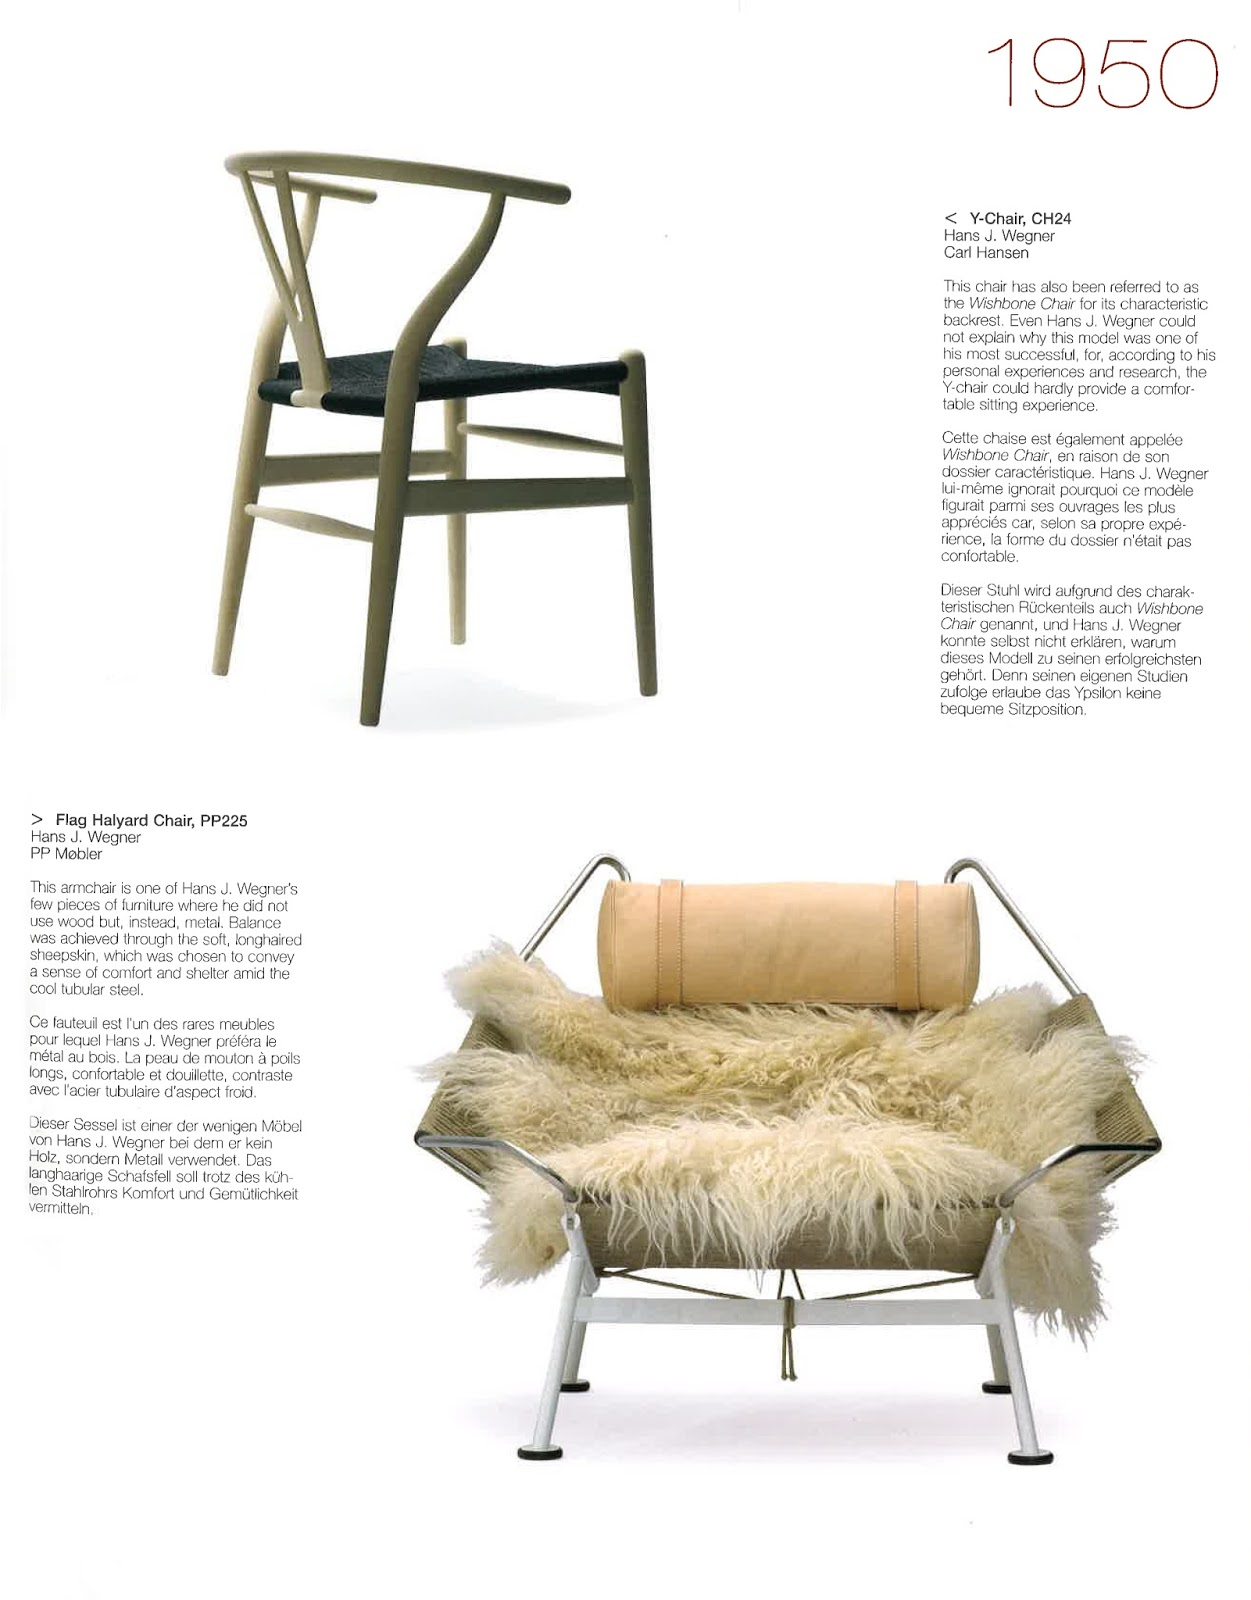 One of our favourite books is modern furniture it brings you the most influential and innovating designs in from the past 150 years beginning with latest